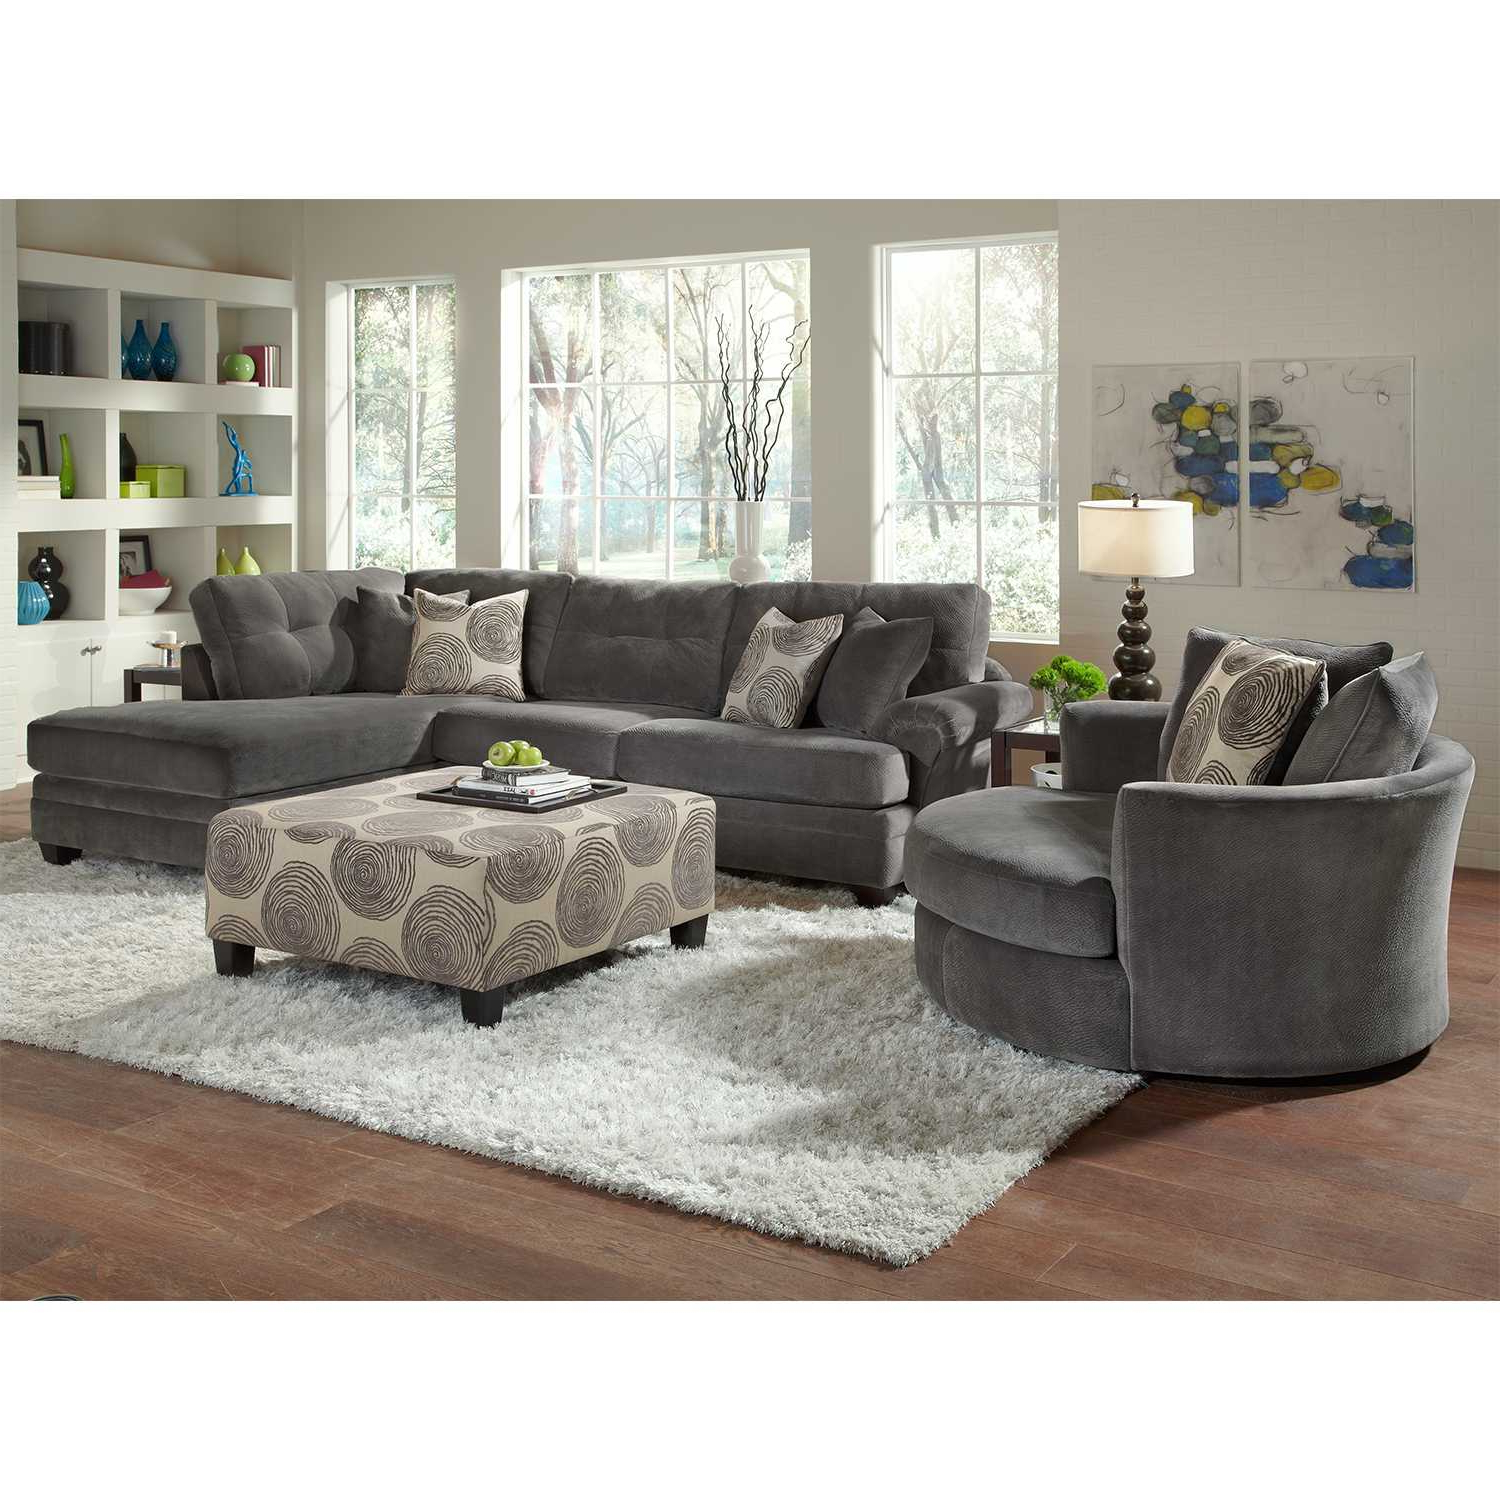 Living Room : Round Sofa Chair Round Lounge Couch Curved Sectional Intended For Preferred Round Sofa Chair Living Room Furniture (View 6 of 20)